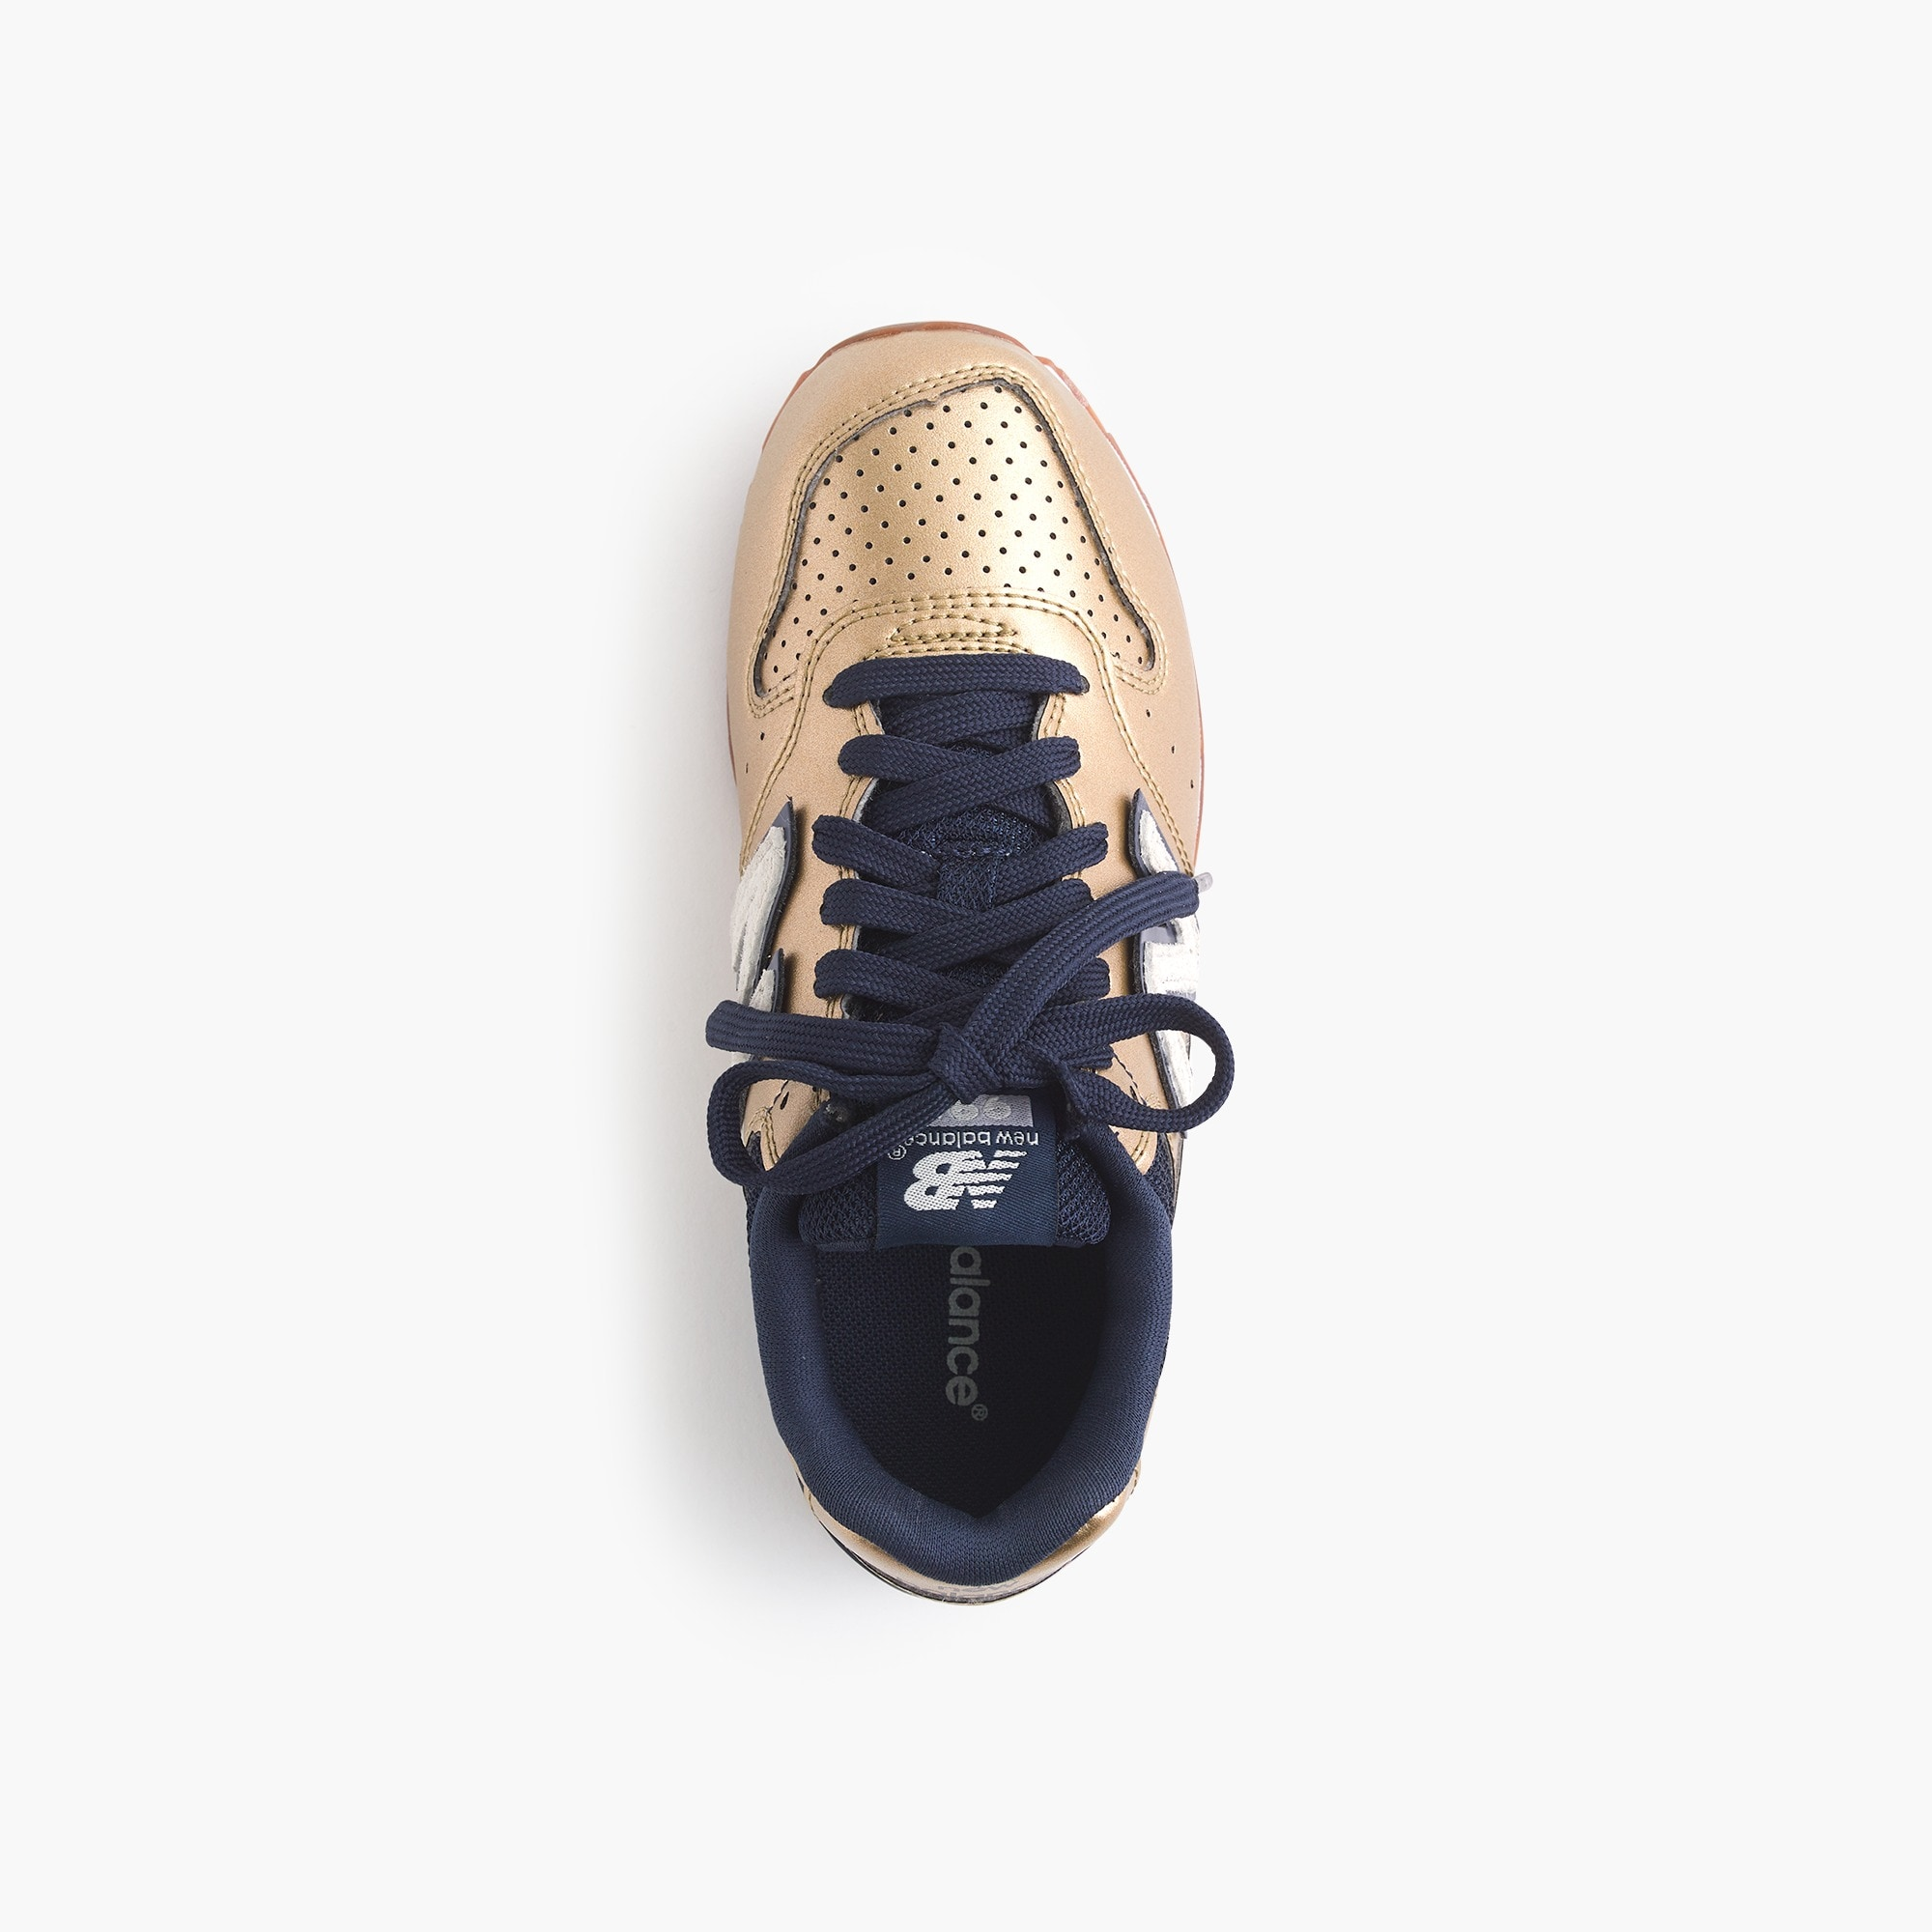 Image 1 for Kids' New Balance® for crewcuts 996 sneakers